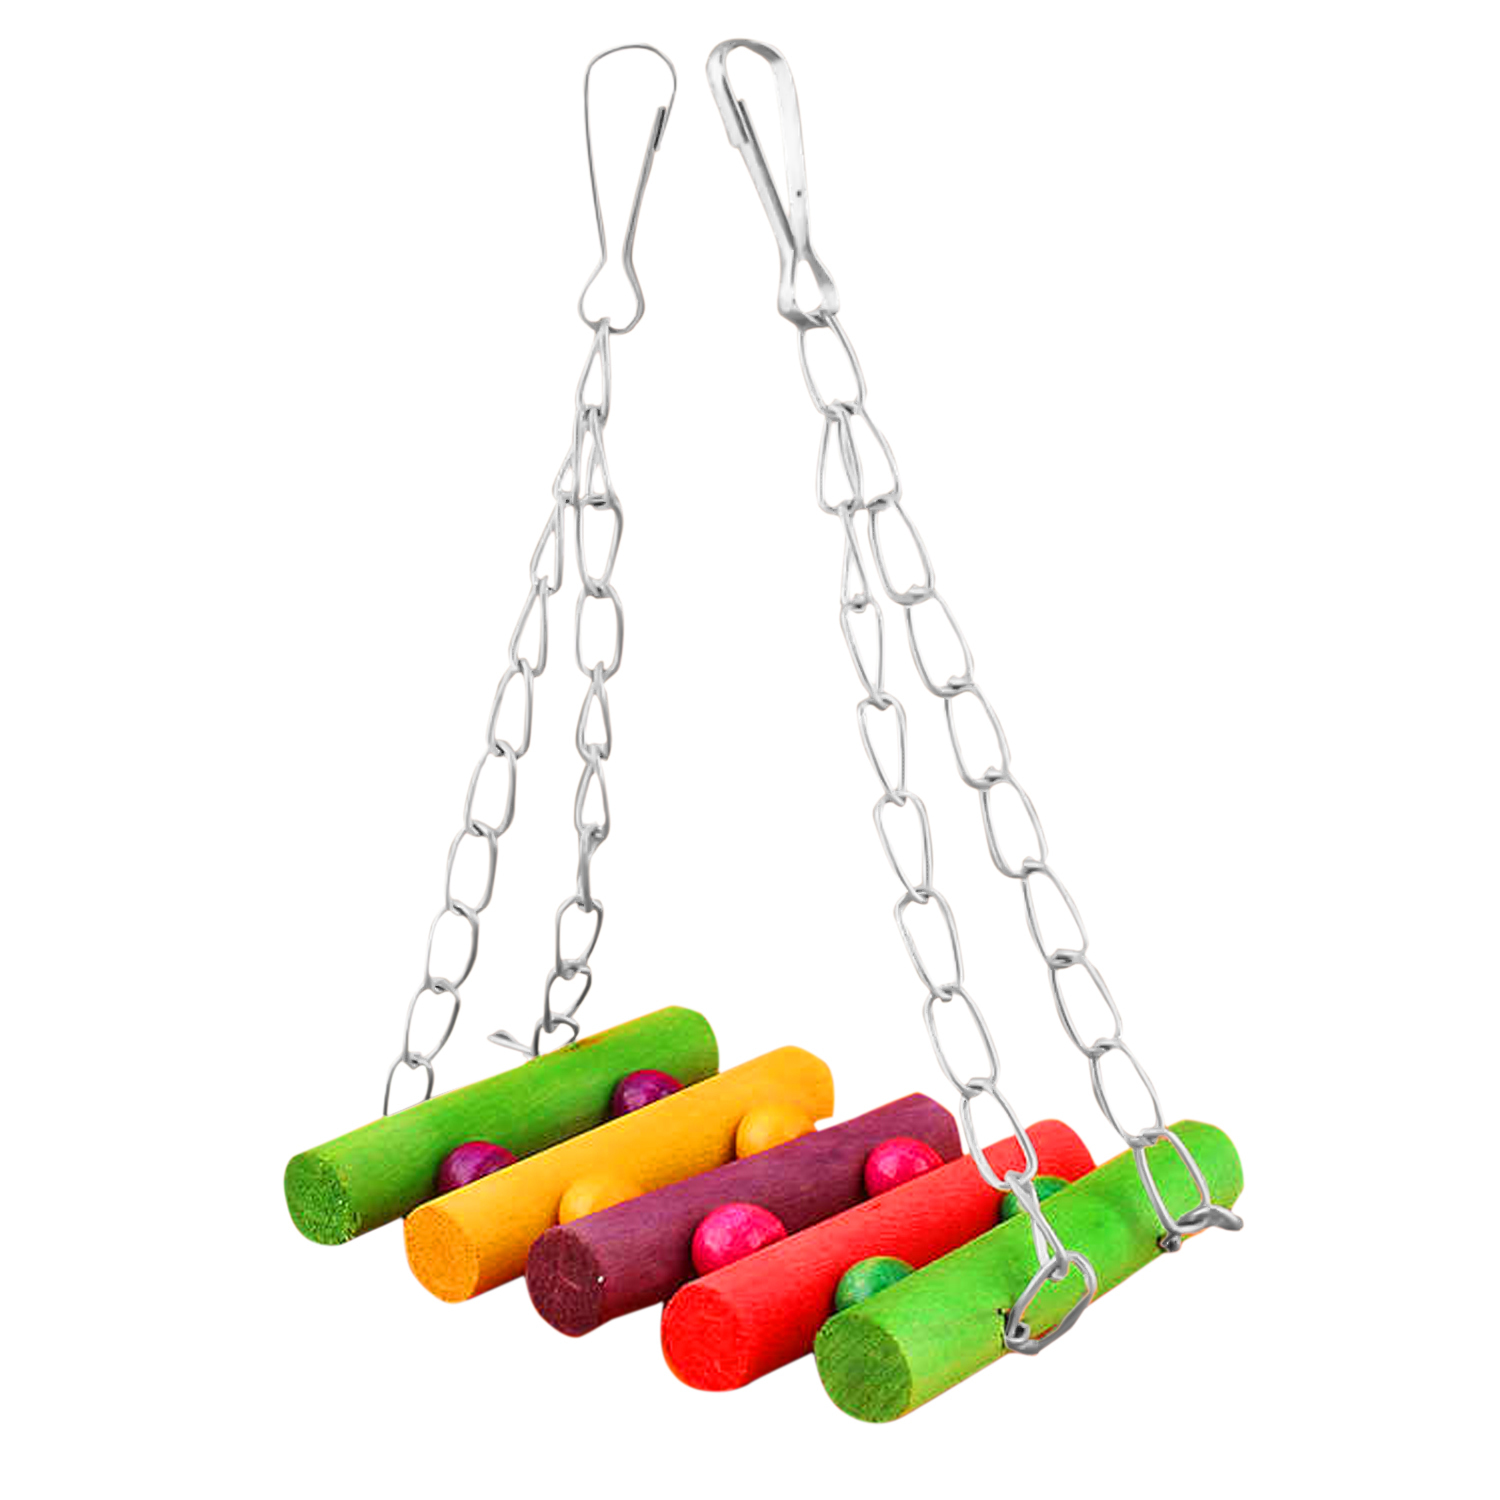 Flexible Colorful Cage Hammock Swing Toy Hanging Toy for Pet Bird Parrot Parakeet Hamster Parakeet Budgie Cockatiel